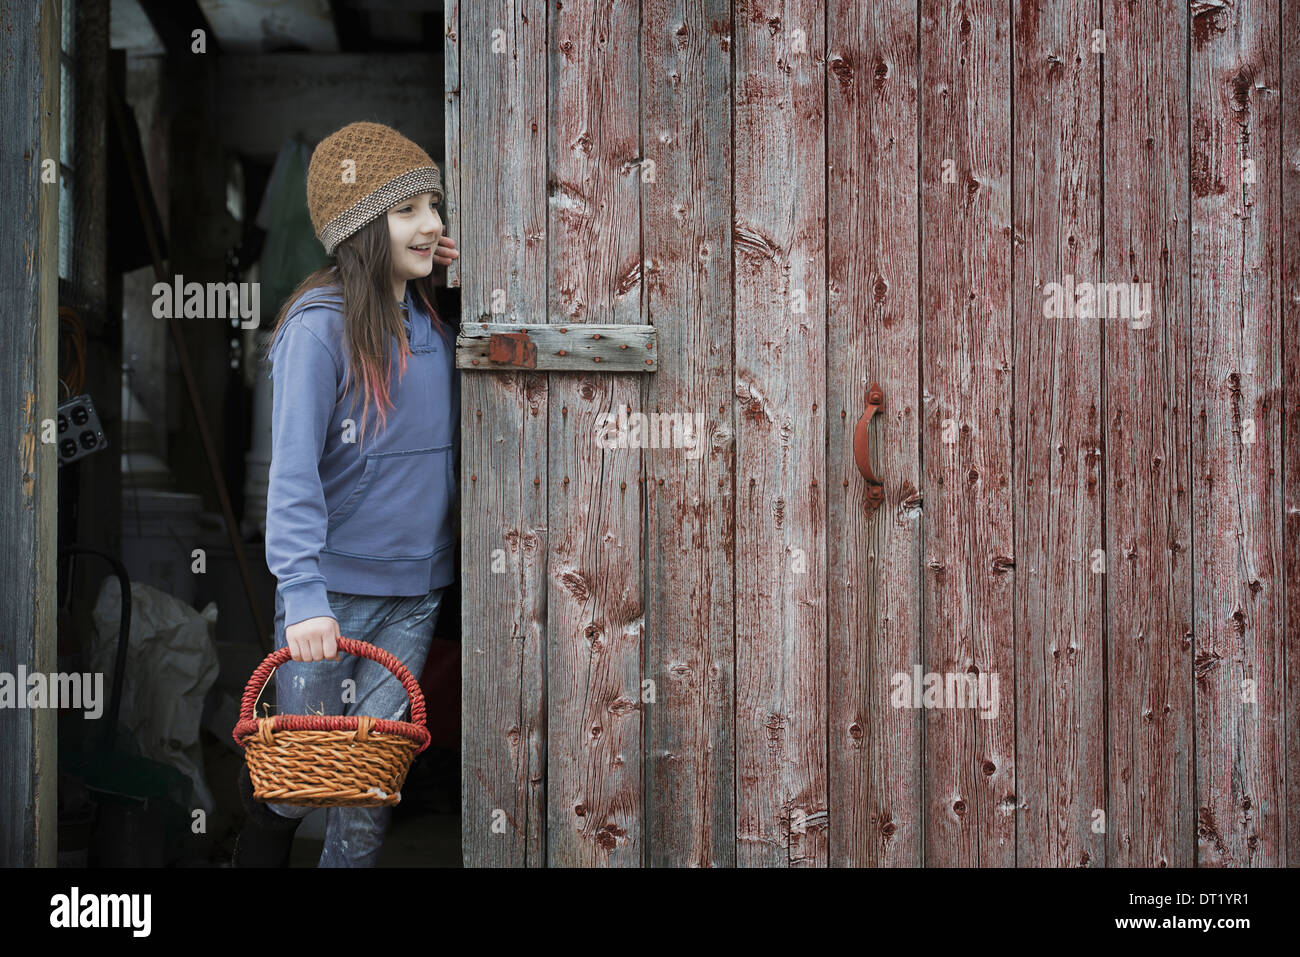 An organic farm in upstate New York in winter A girl in a barn doorway with a basket - Stock Image